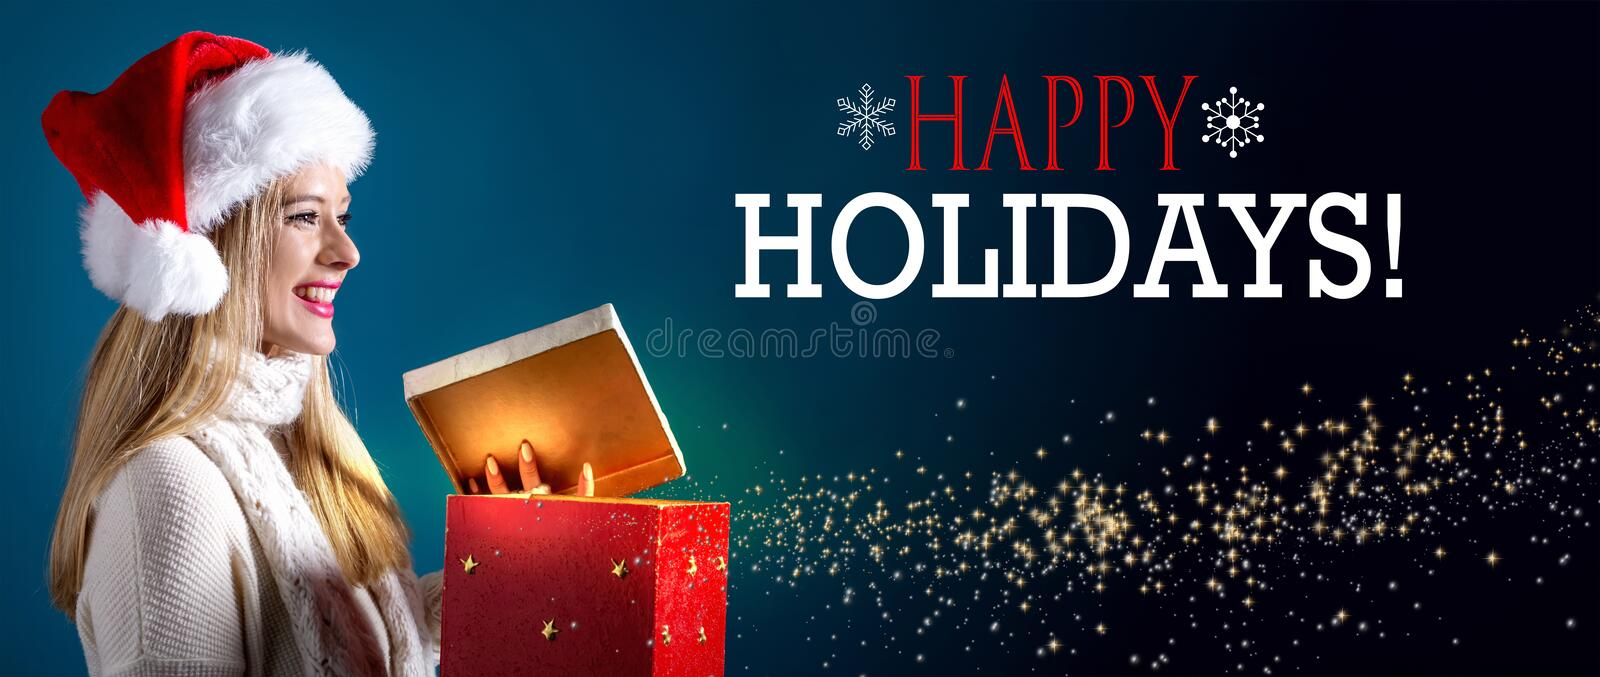 Happy holidays message with woman opening a gift box stock image